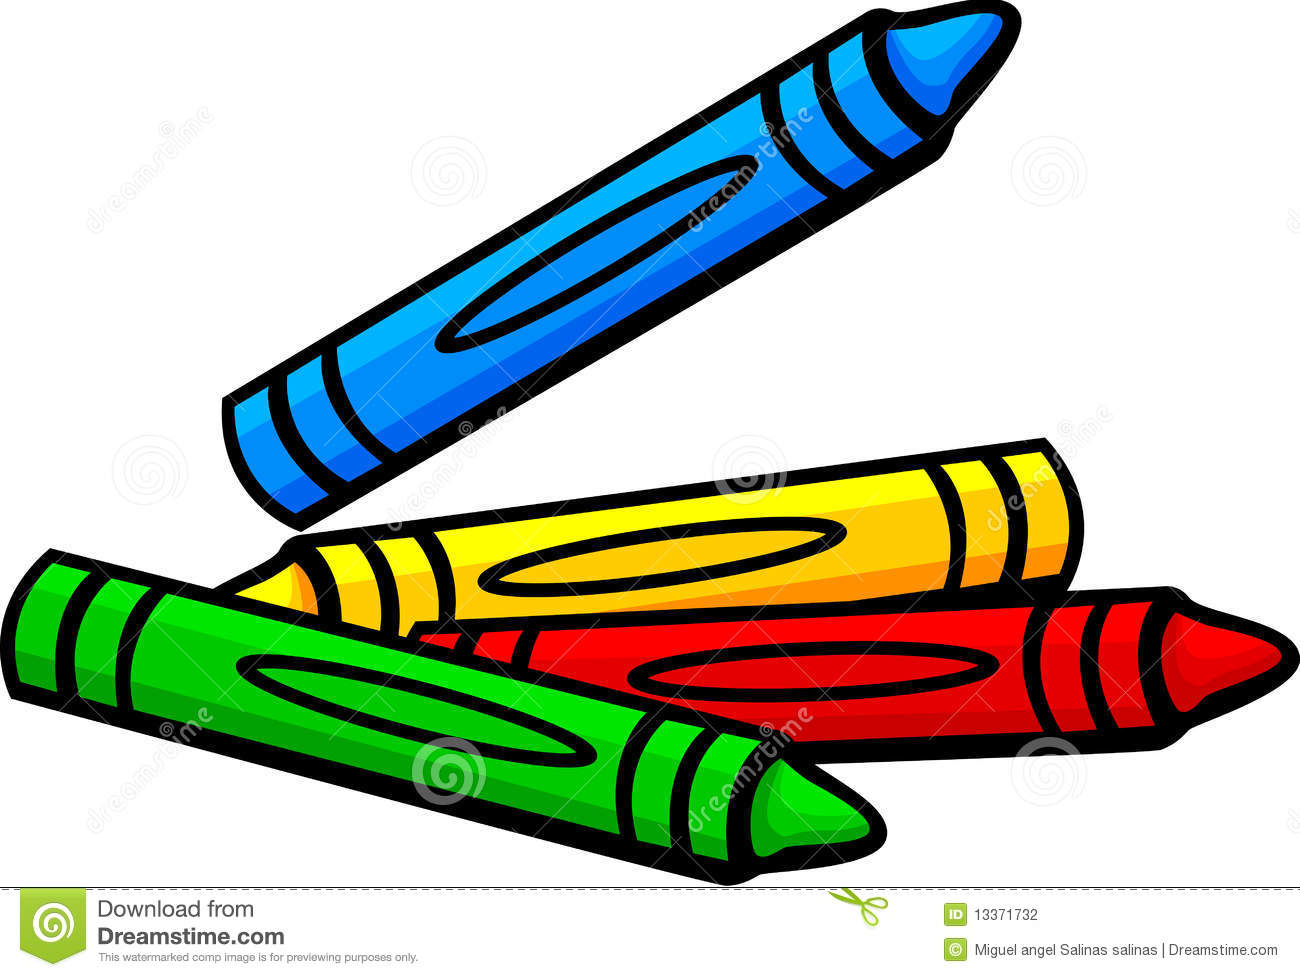 Box Of Crayons Clipart | Free download best Box Of Crayons ...Crayon Markers Clipart